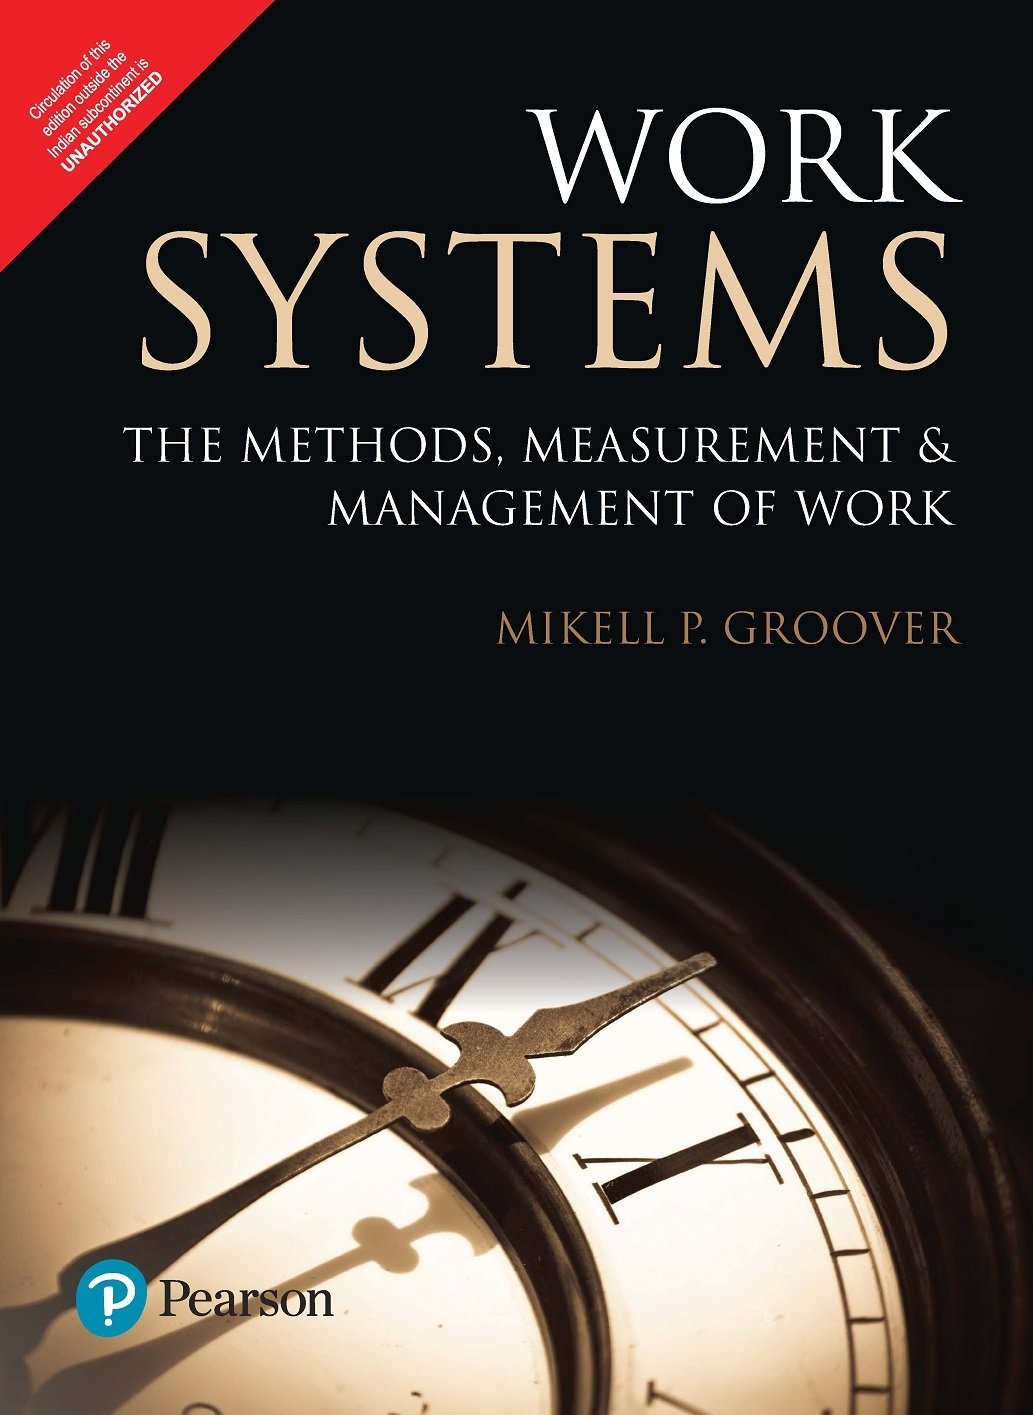 Manufacturing system mikell groover solution manual engaging videos highlight key topics array buy work systems the methods measurement u0026 management of work book rh fandeluxe Image collections